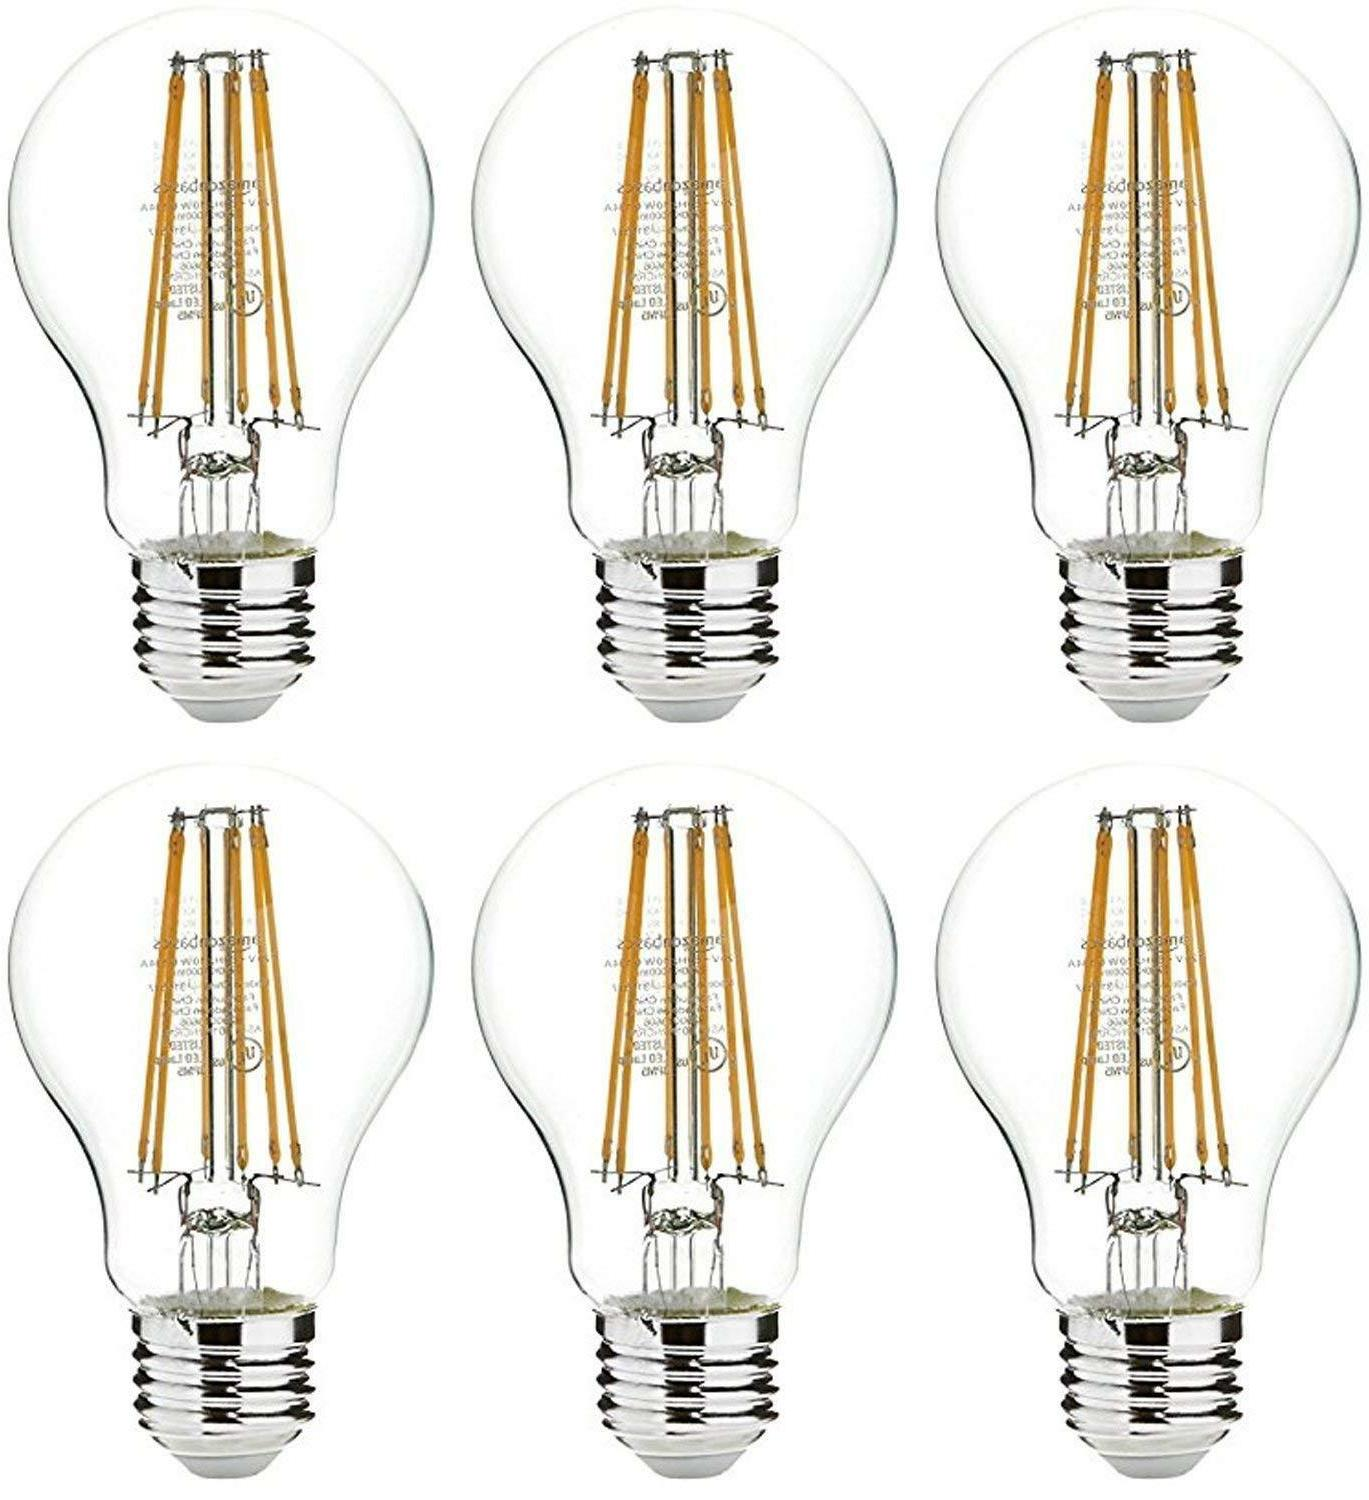 AmazonBasics 75 Watt Equivalent  Clear Non-Dimmable A19 LED